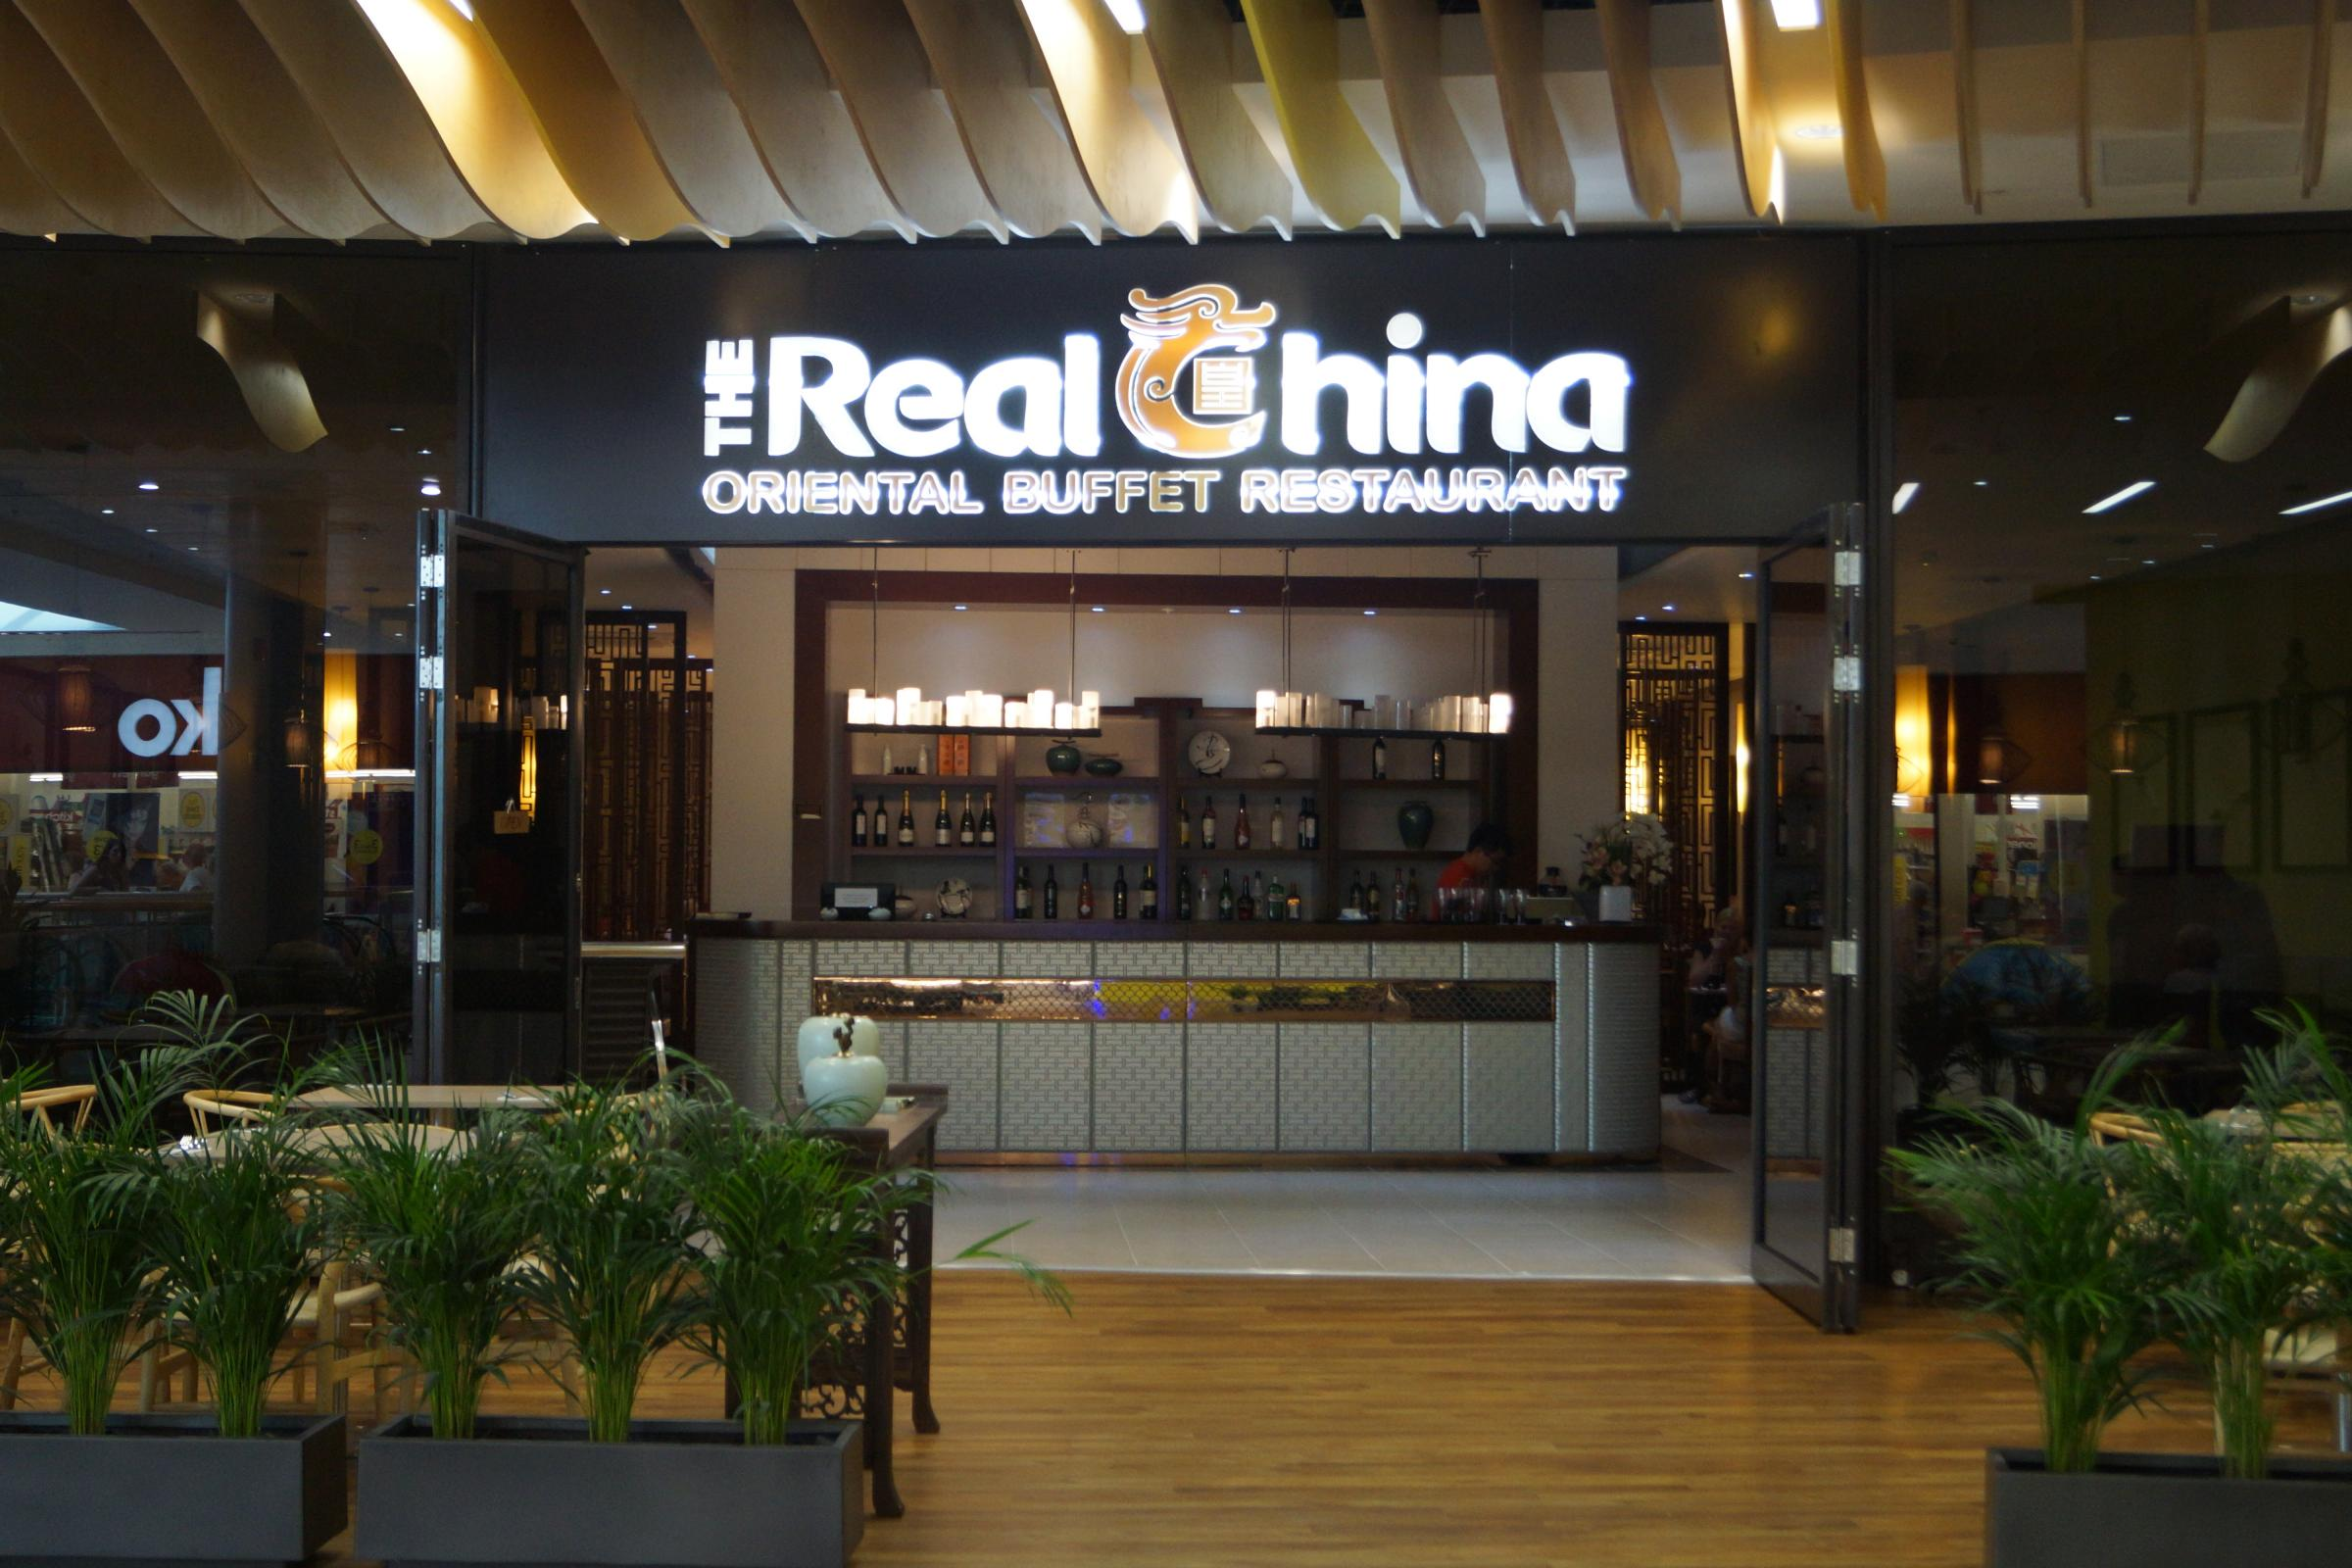 The Real China at Kingfisher Shopping Centre. SP